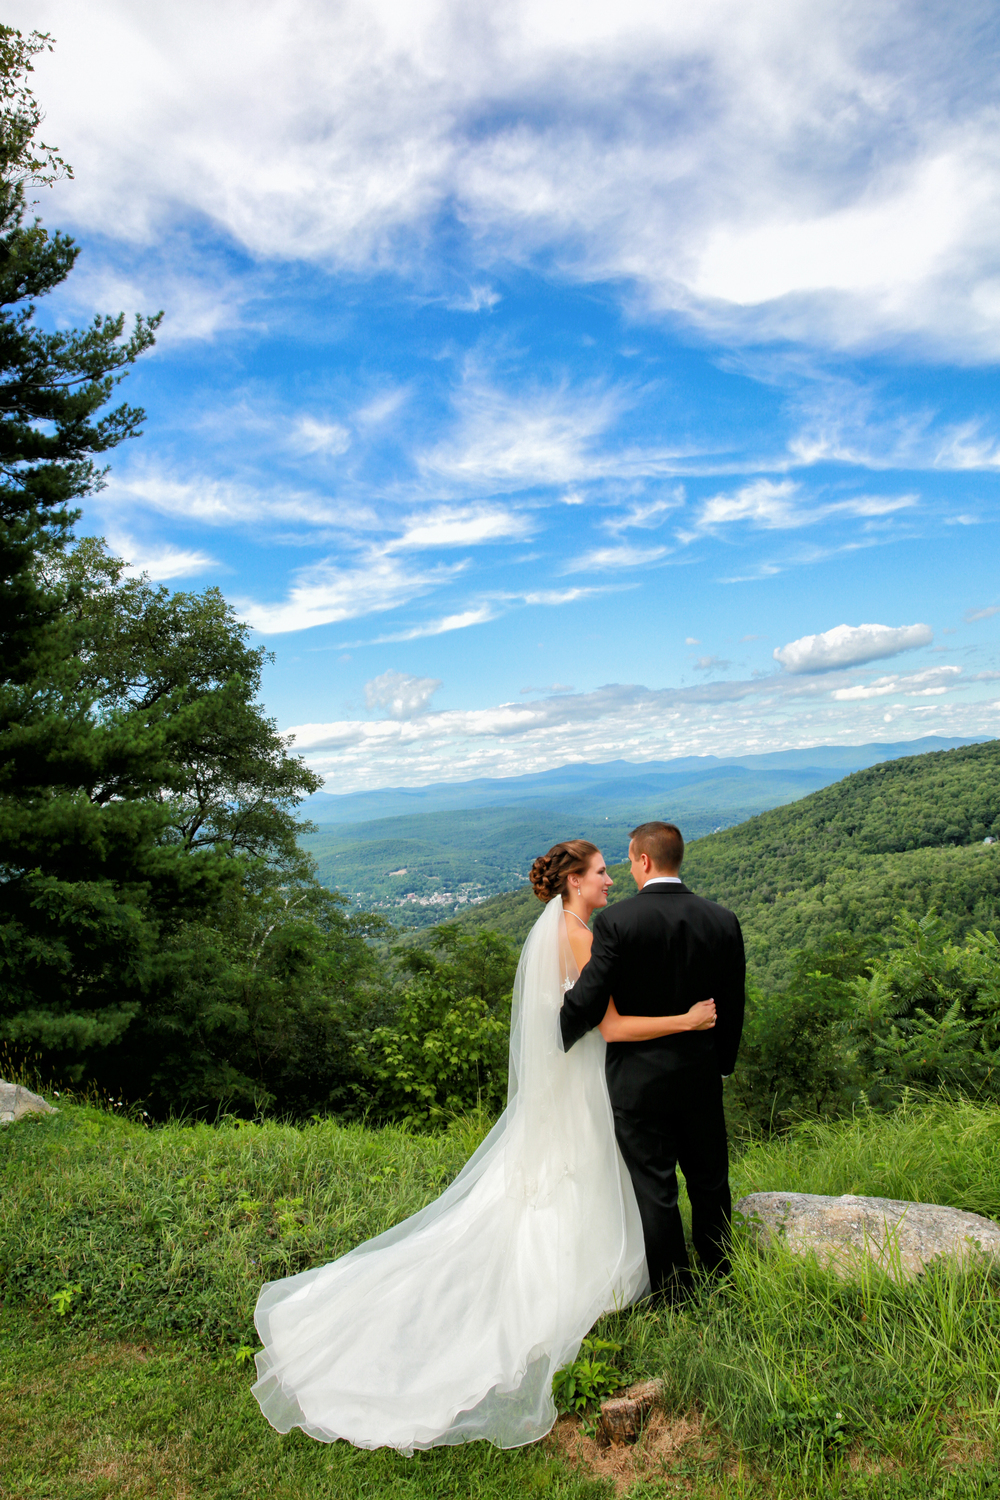 Wedding Photography near Mohonk Mountain House